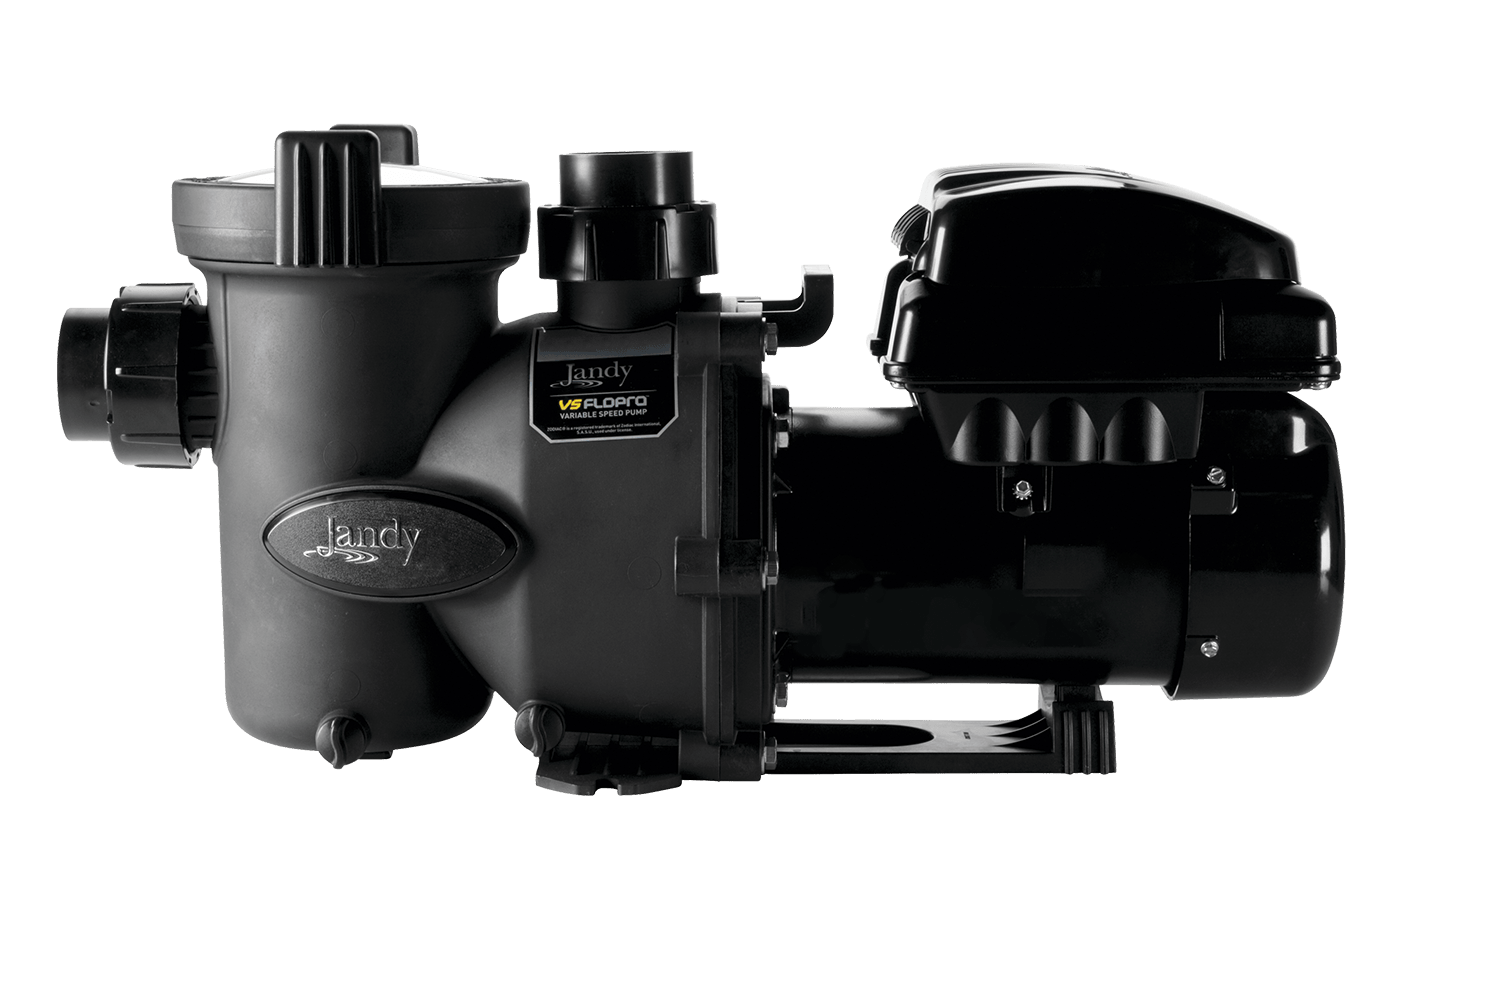 VS FloPro 0.85 HP pump side view